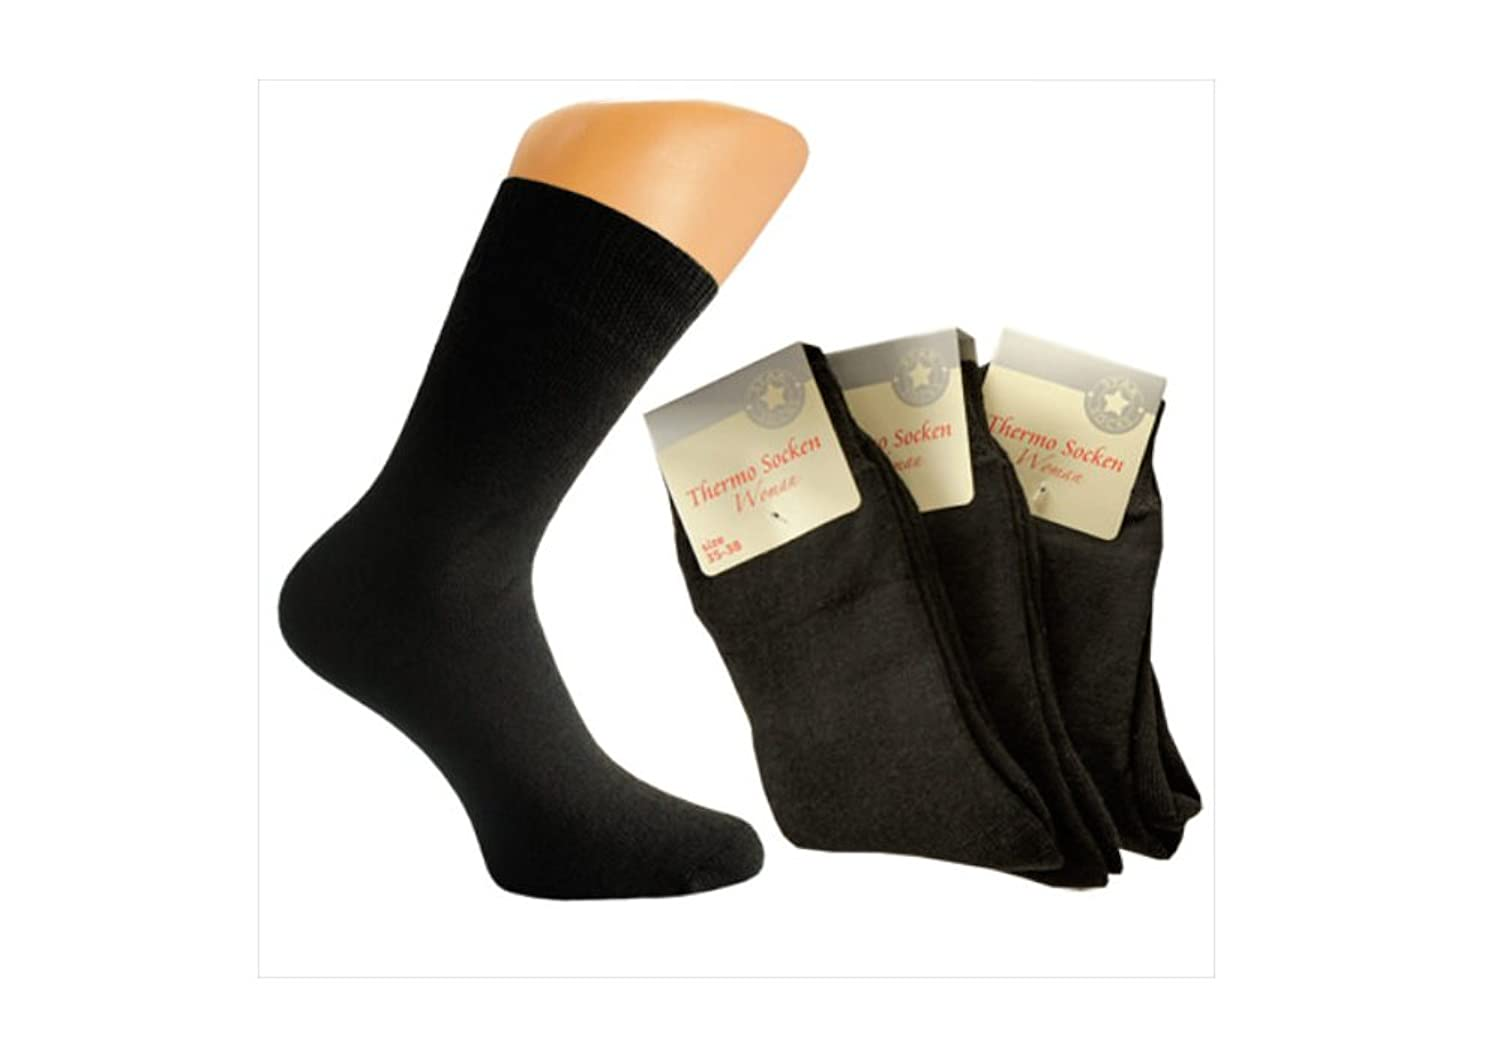 3er oder 6er Pack Damen Thermo-Socken, Frotteesocken, uni schwarze Socken, warme Thermosocken, Home-Socken